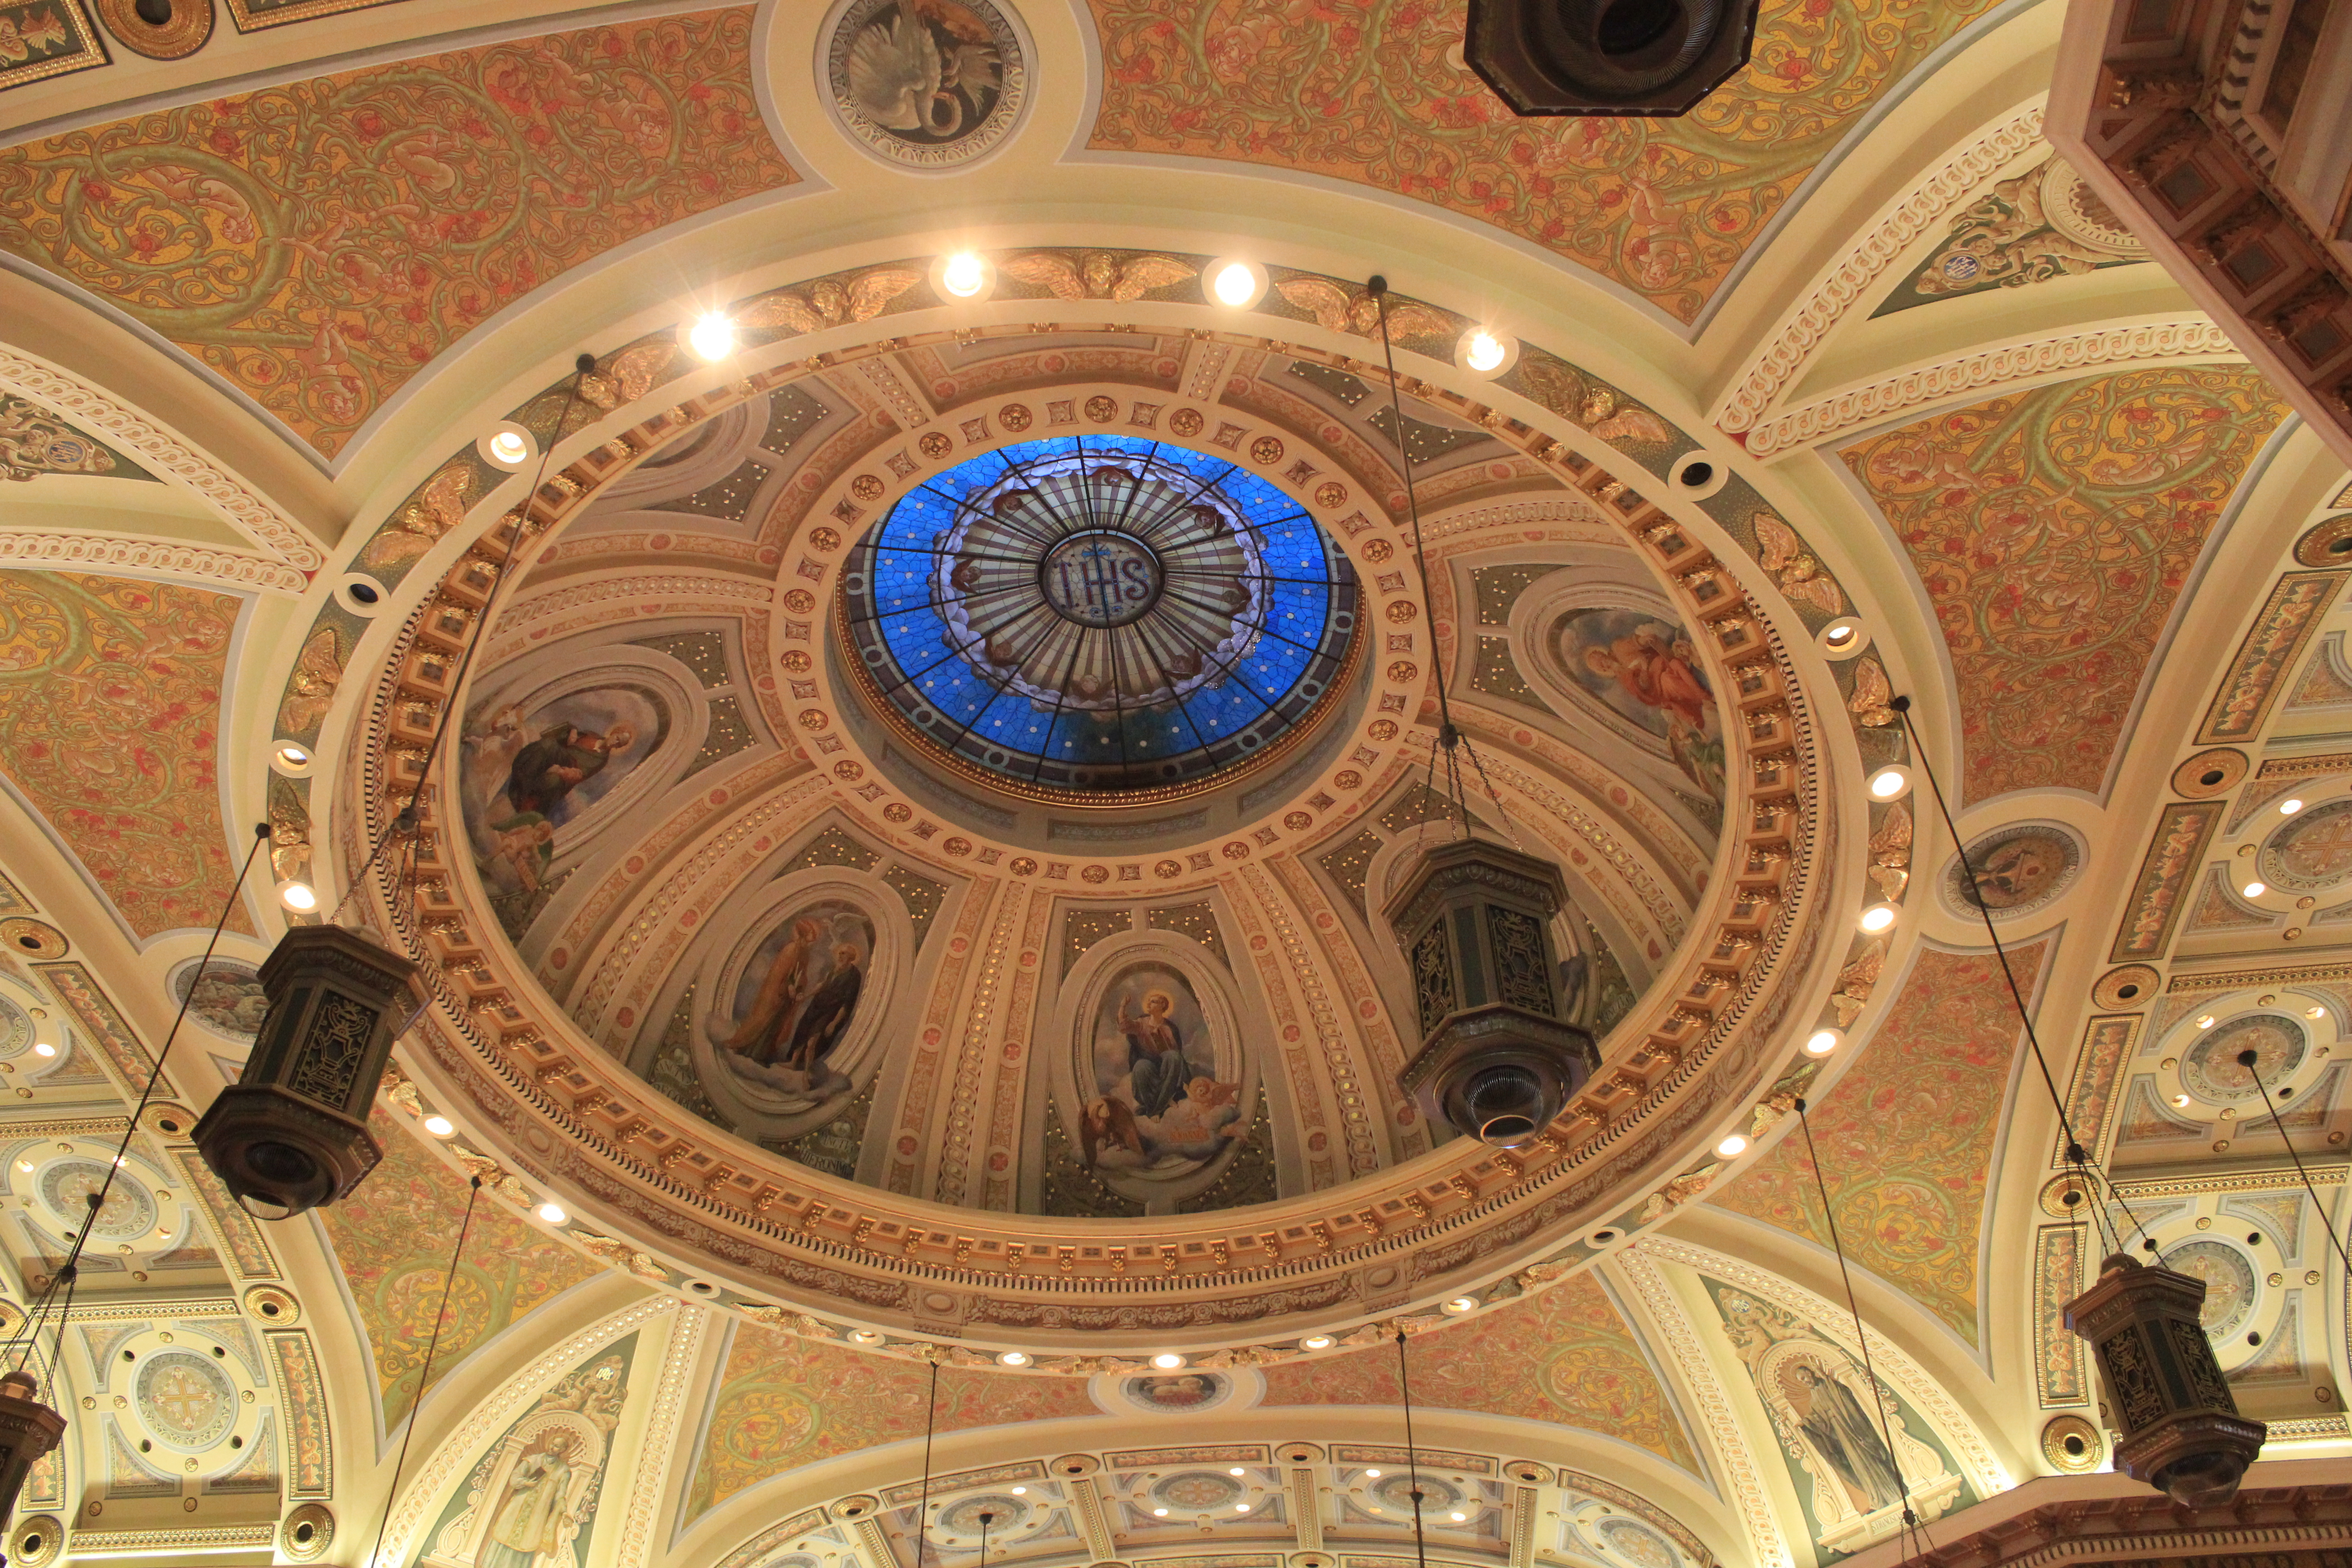 Dome of St. Joseph's (image from Wikipedia Commons)